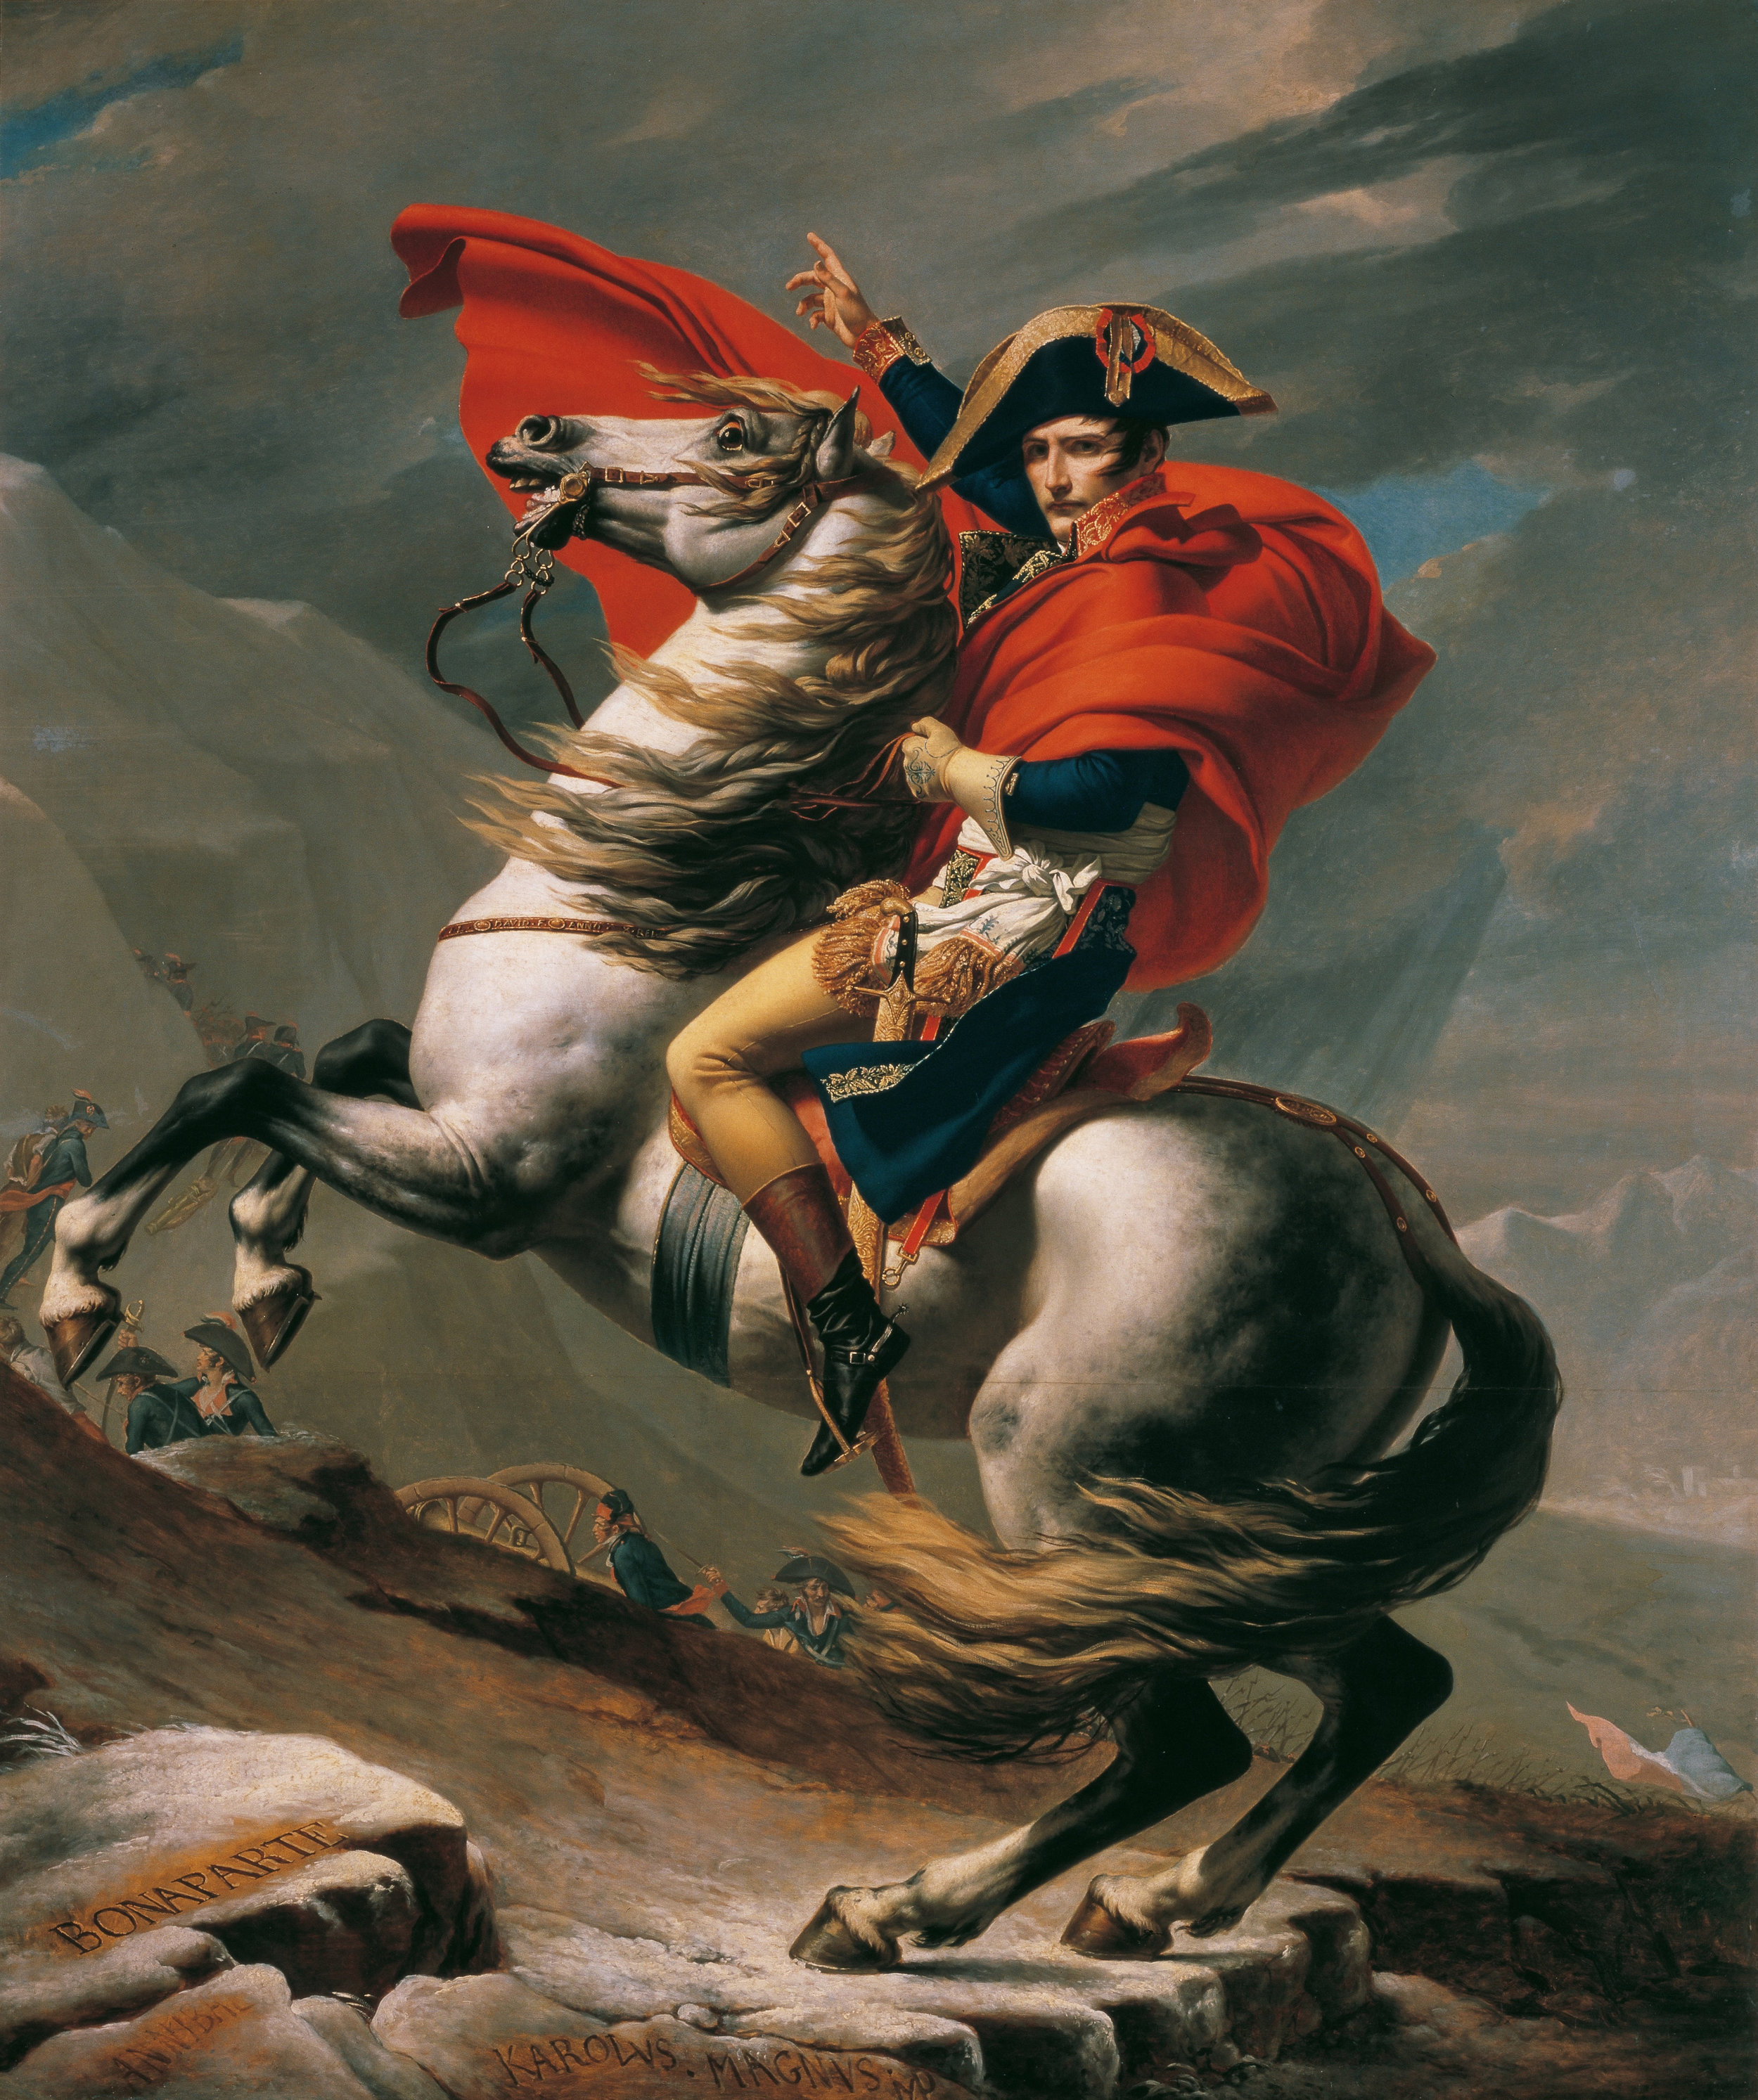 Napoleon_at_the_Great_St._Bernard_-_Jacques-Louis_David_-_Google_Cultural_Institute.jpg